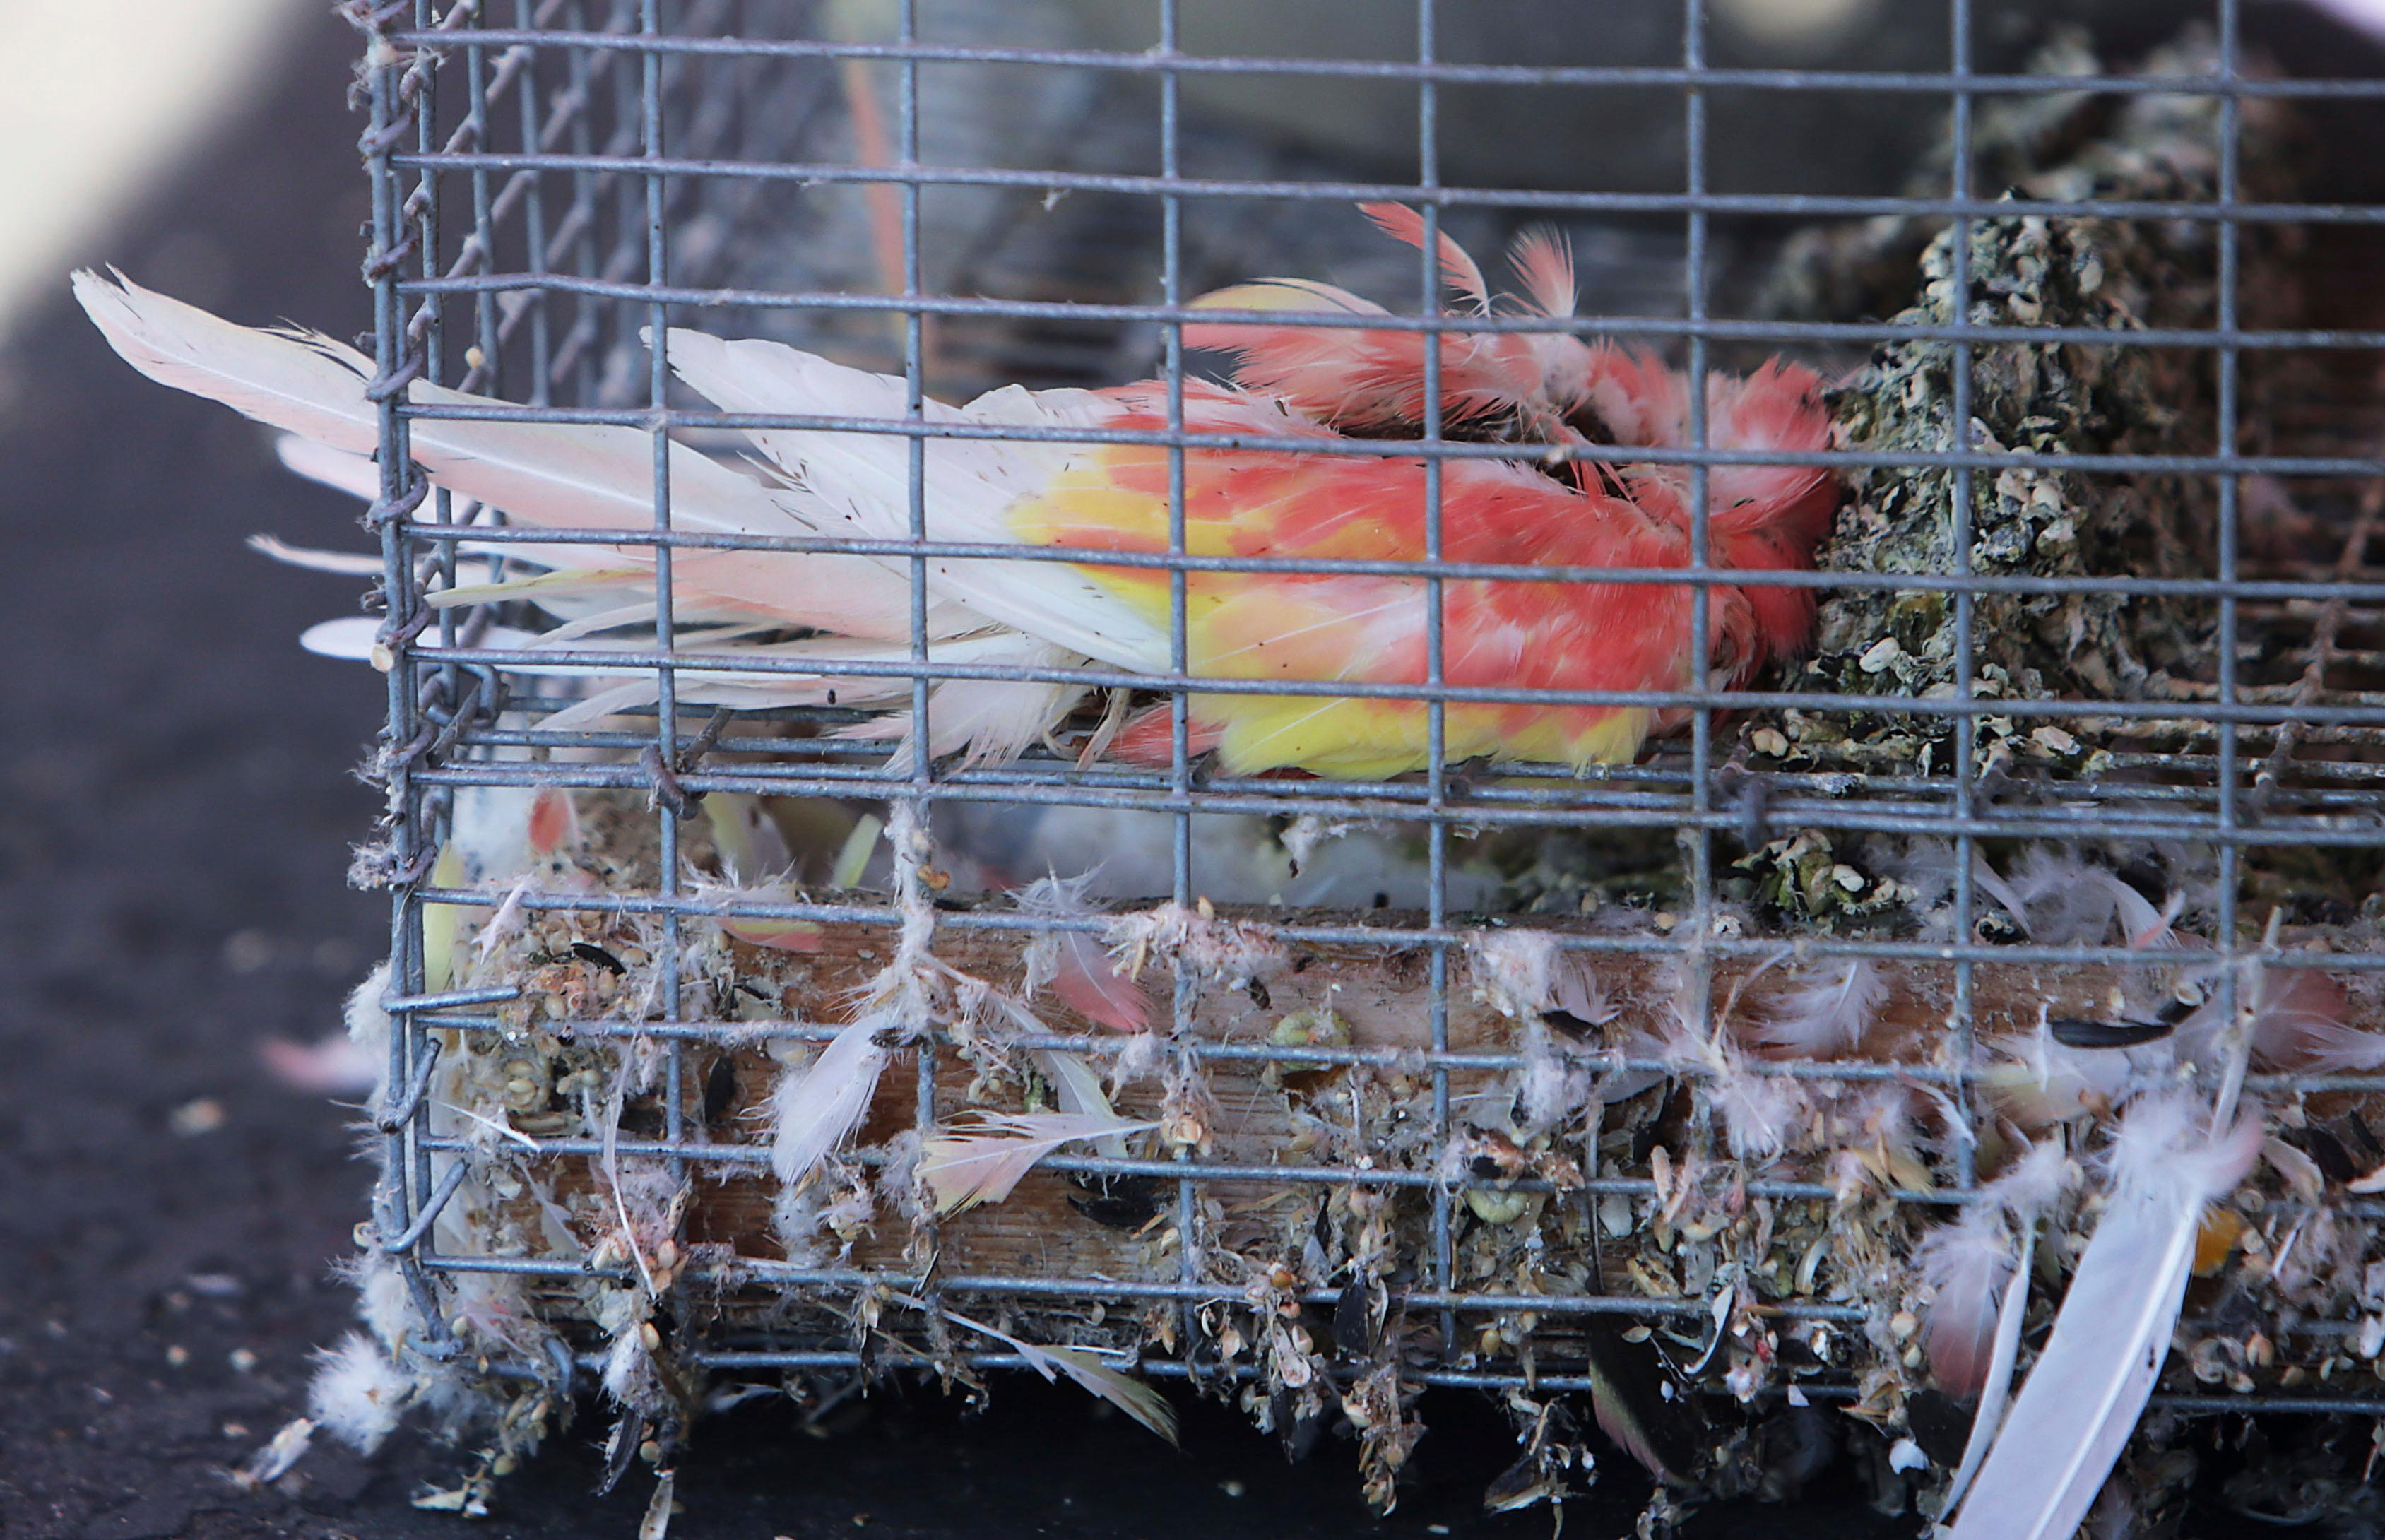 This photo shows one of the dead birds still in a cage as the Inland Valley Humane Society removes animals some alive and dead, from a warehouse Friday, Aug. 4, 2017 in Montclair, Calif. Montclair police stumbled across a trash-strewn industrial building crammed with more than 1,000 snakes, parrots, chickens and other exotic animals when they arrived to serve an arrest warrant on a man there.  (Terry Pierson/Los Angeles Daily News via AP)